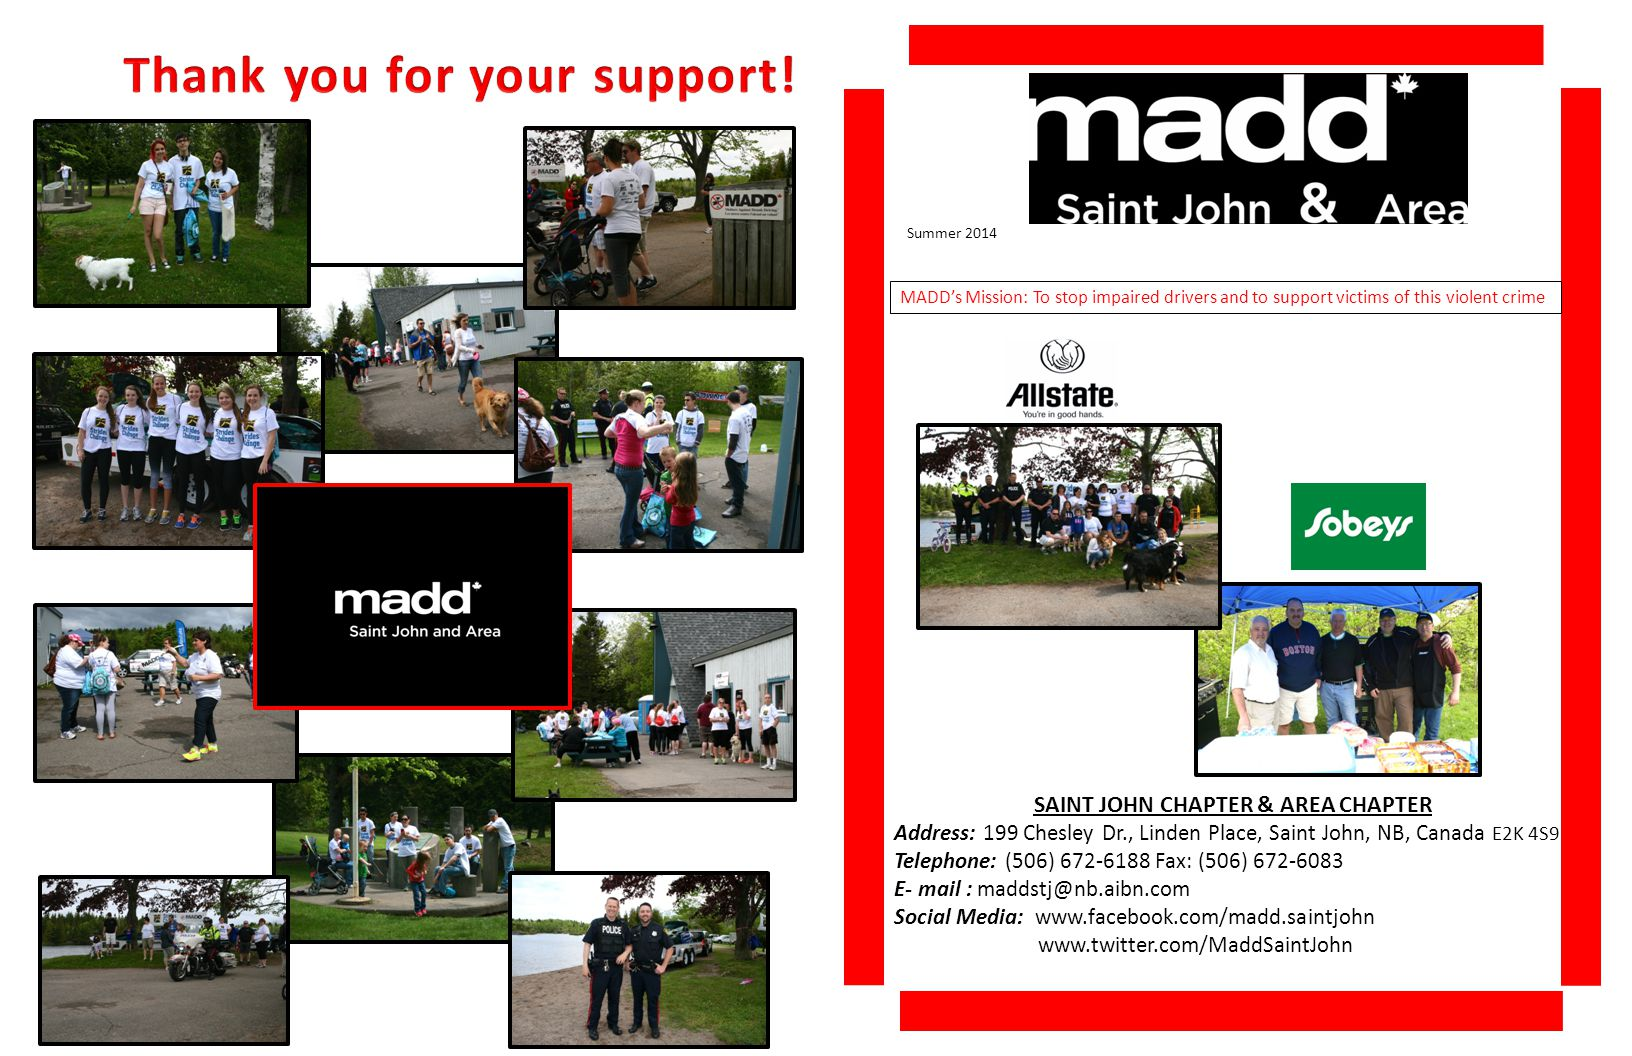 Summer 2014 MADD's Mission: To stop impaired drivers and to support victims of this violent crime SAINT JOHN CHAPTER & AREA CHAPTER Address: 199 Chesl